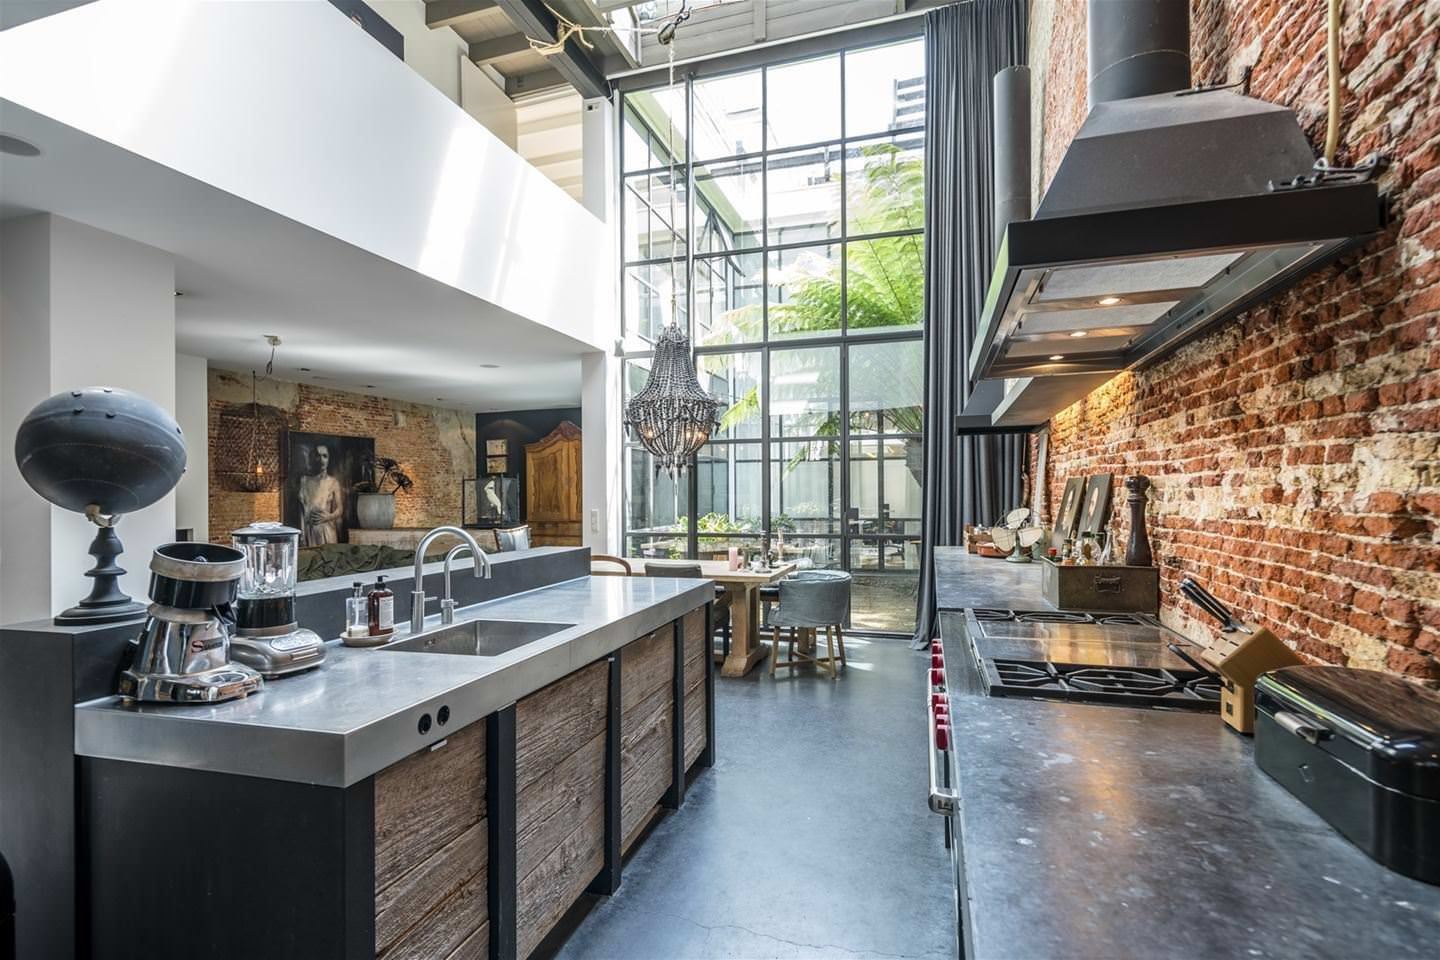 Offene Küche Industriedesign Kitchen Area Receives Lots Of Natural Light From The Two Story